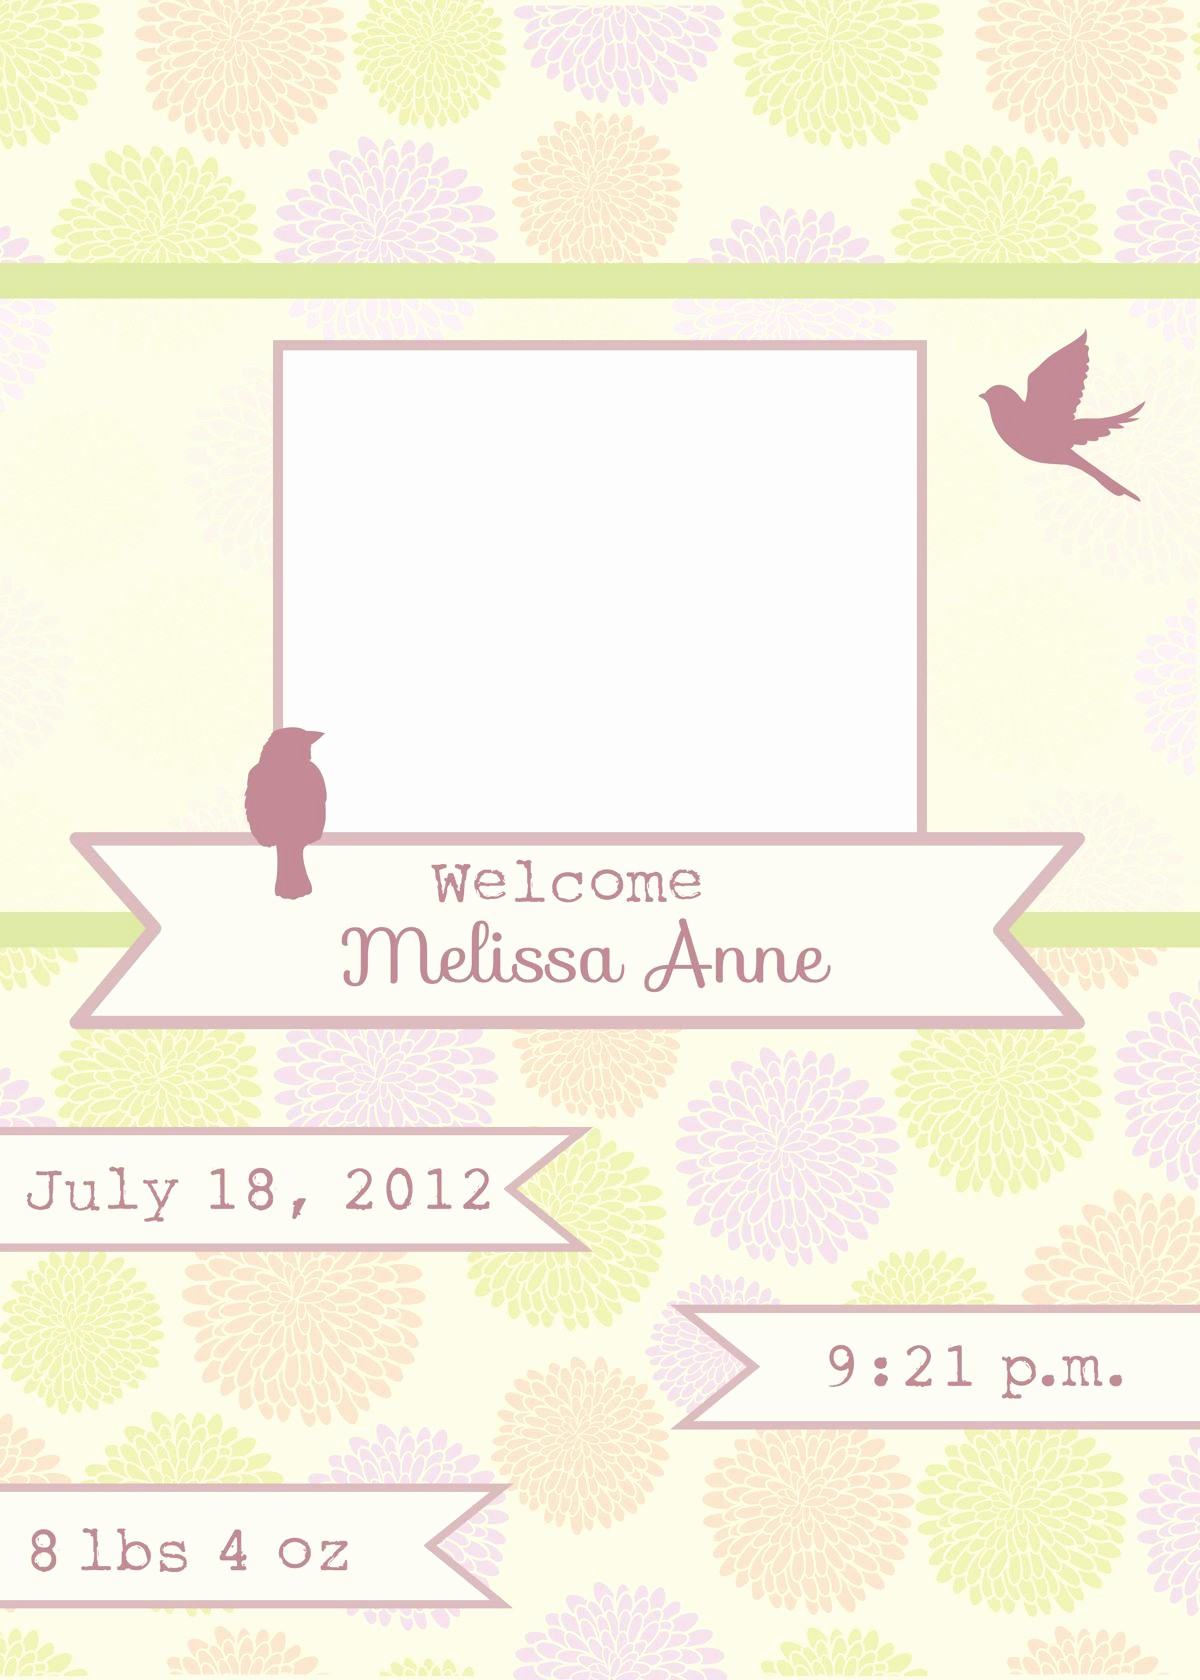 Baby Girl Birth Announcements Template Inspirational Amazingly Creative Birth Announcement Templates